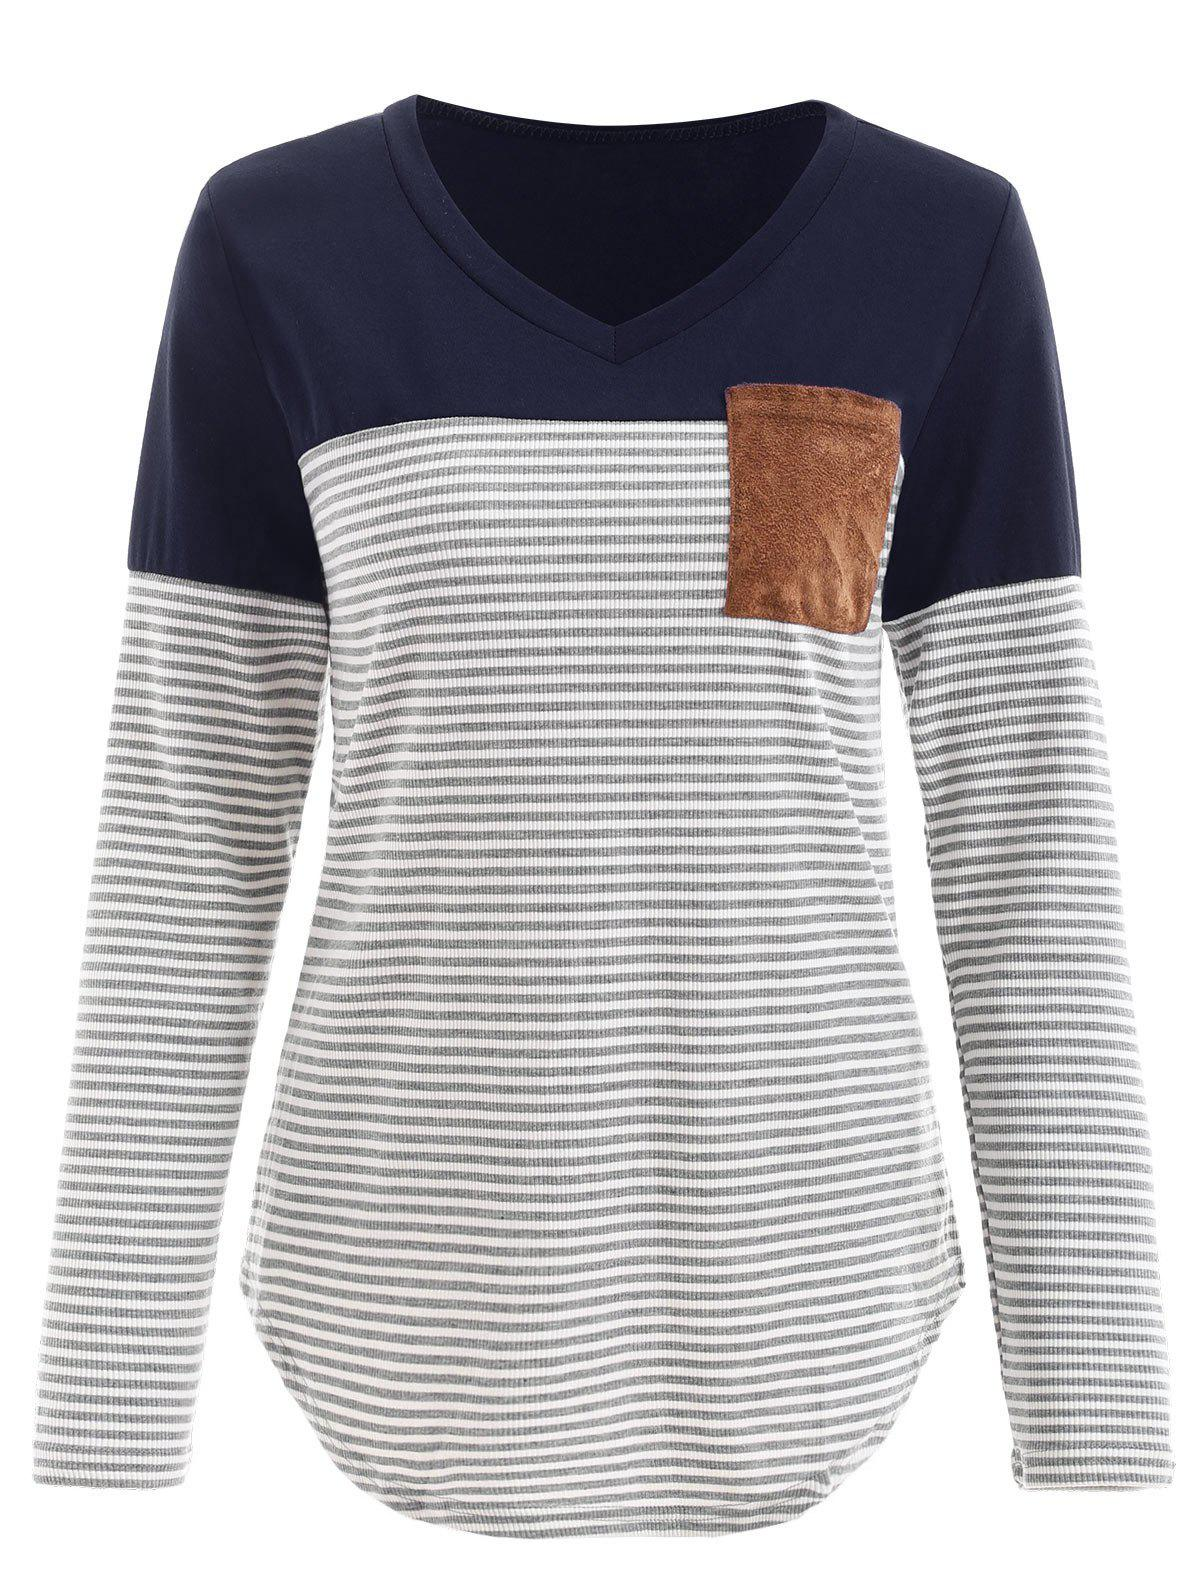 Unique V Neck Striped Panel T-shirt